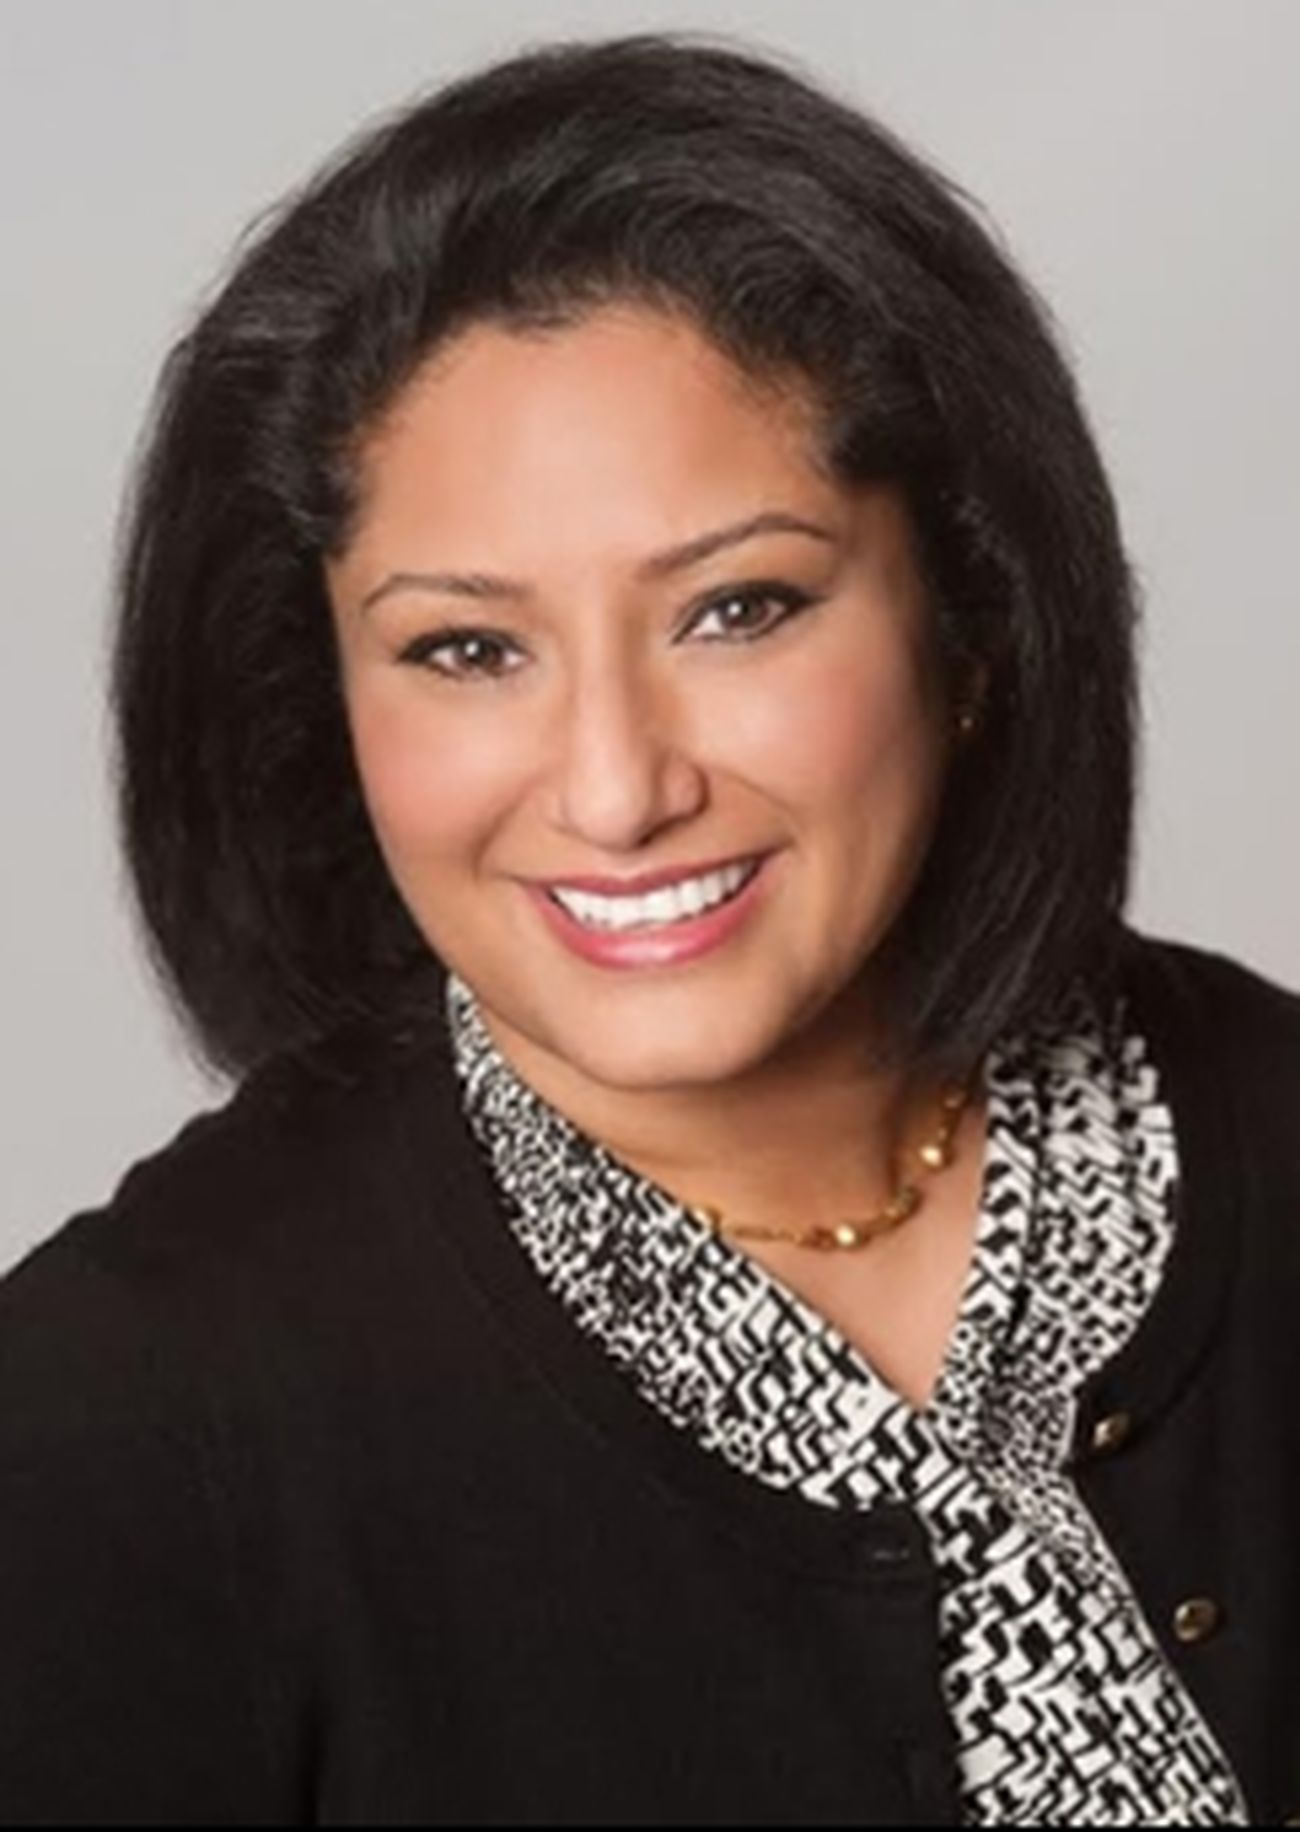 Dr. Shahan Chowdhury. Looking for concierge healthcare services? Speak with our board certified Dallas physicians at Diamond Physicians! Doctor  Doctors Dr. Shahan Chowdhury Health Healthcare Healthcare And Medicine Physician